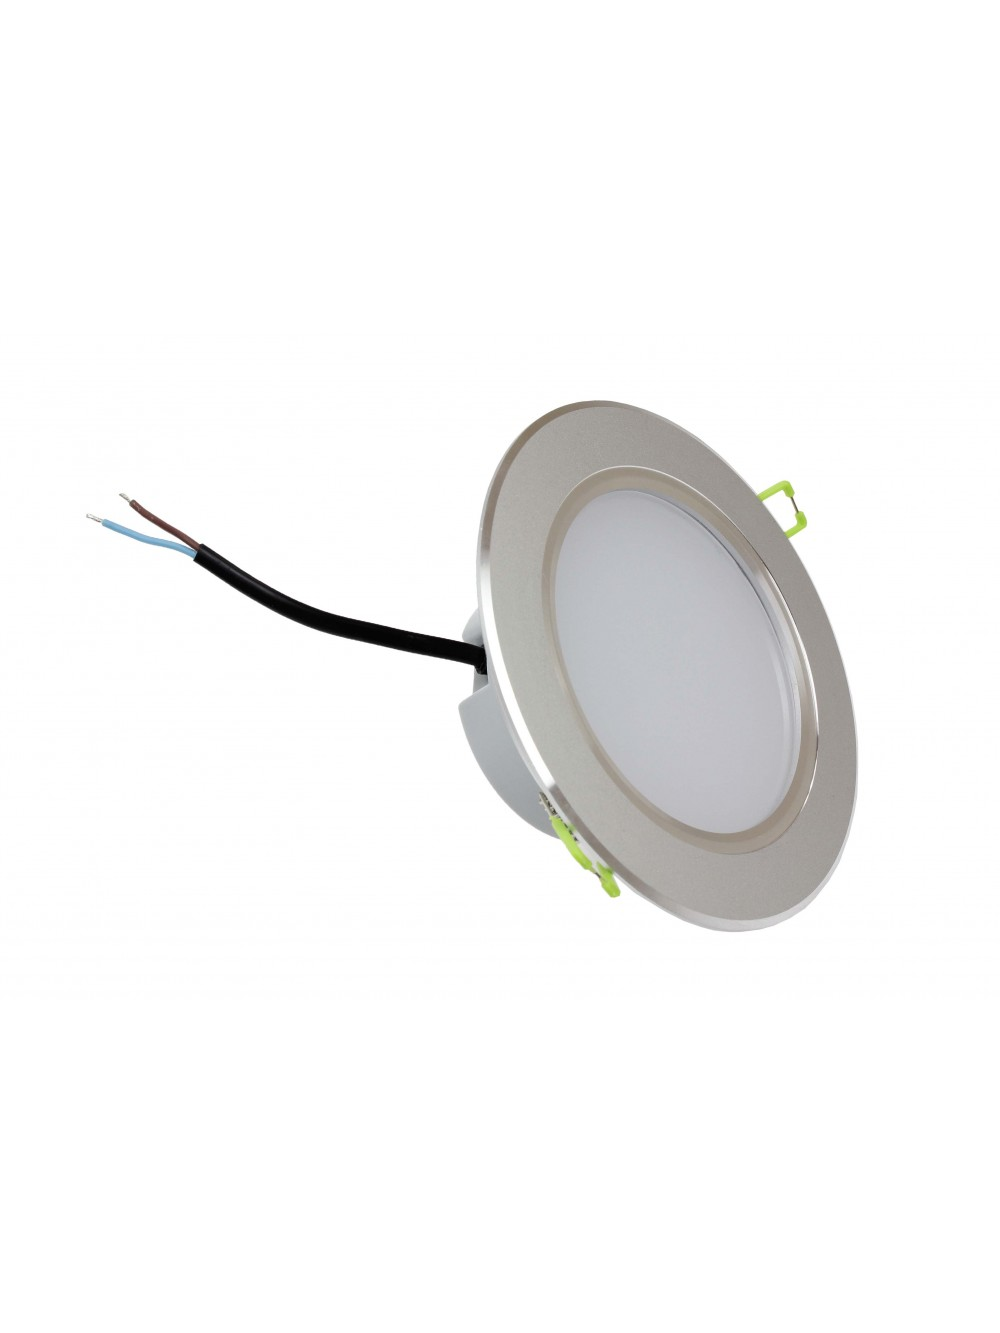 oprawa downlight 9w eco led 3000k chrom mat lightech. Black Bedroom Furniture Sets. Home Design Ideas